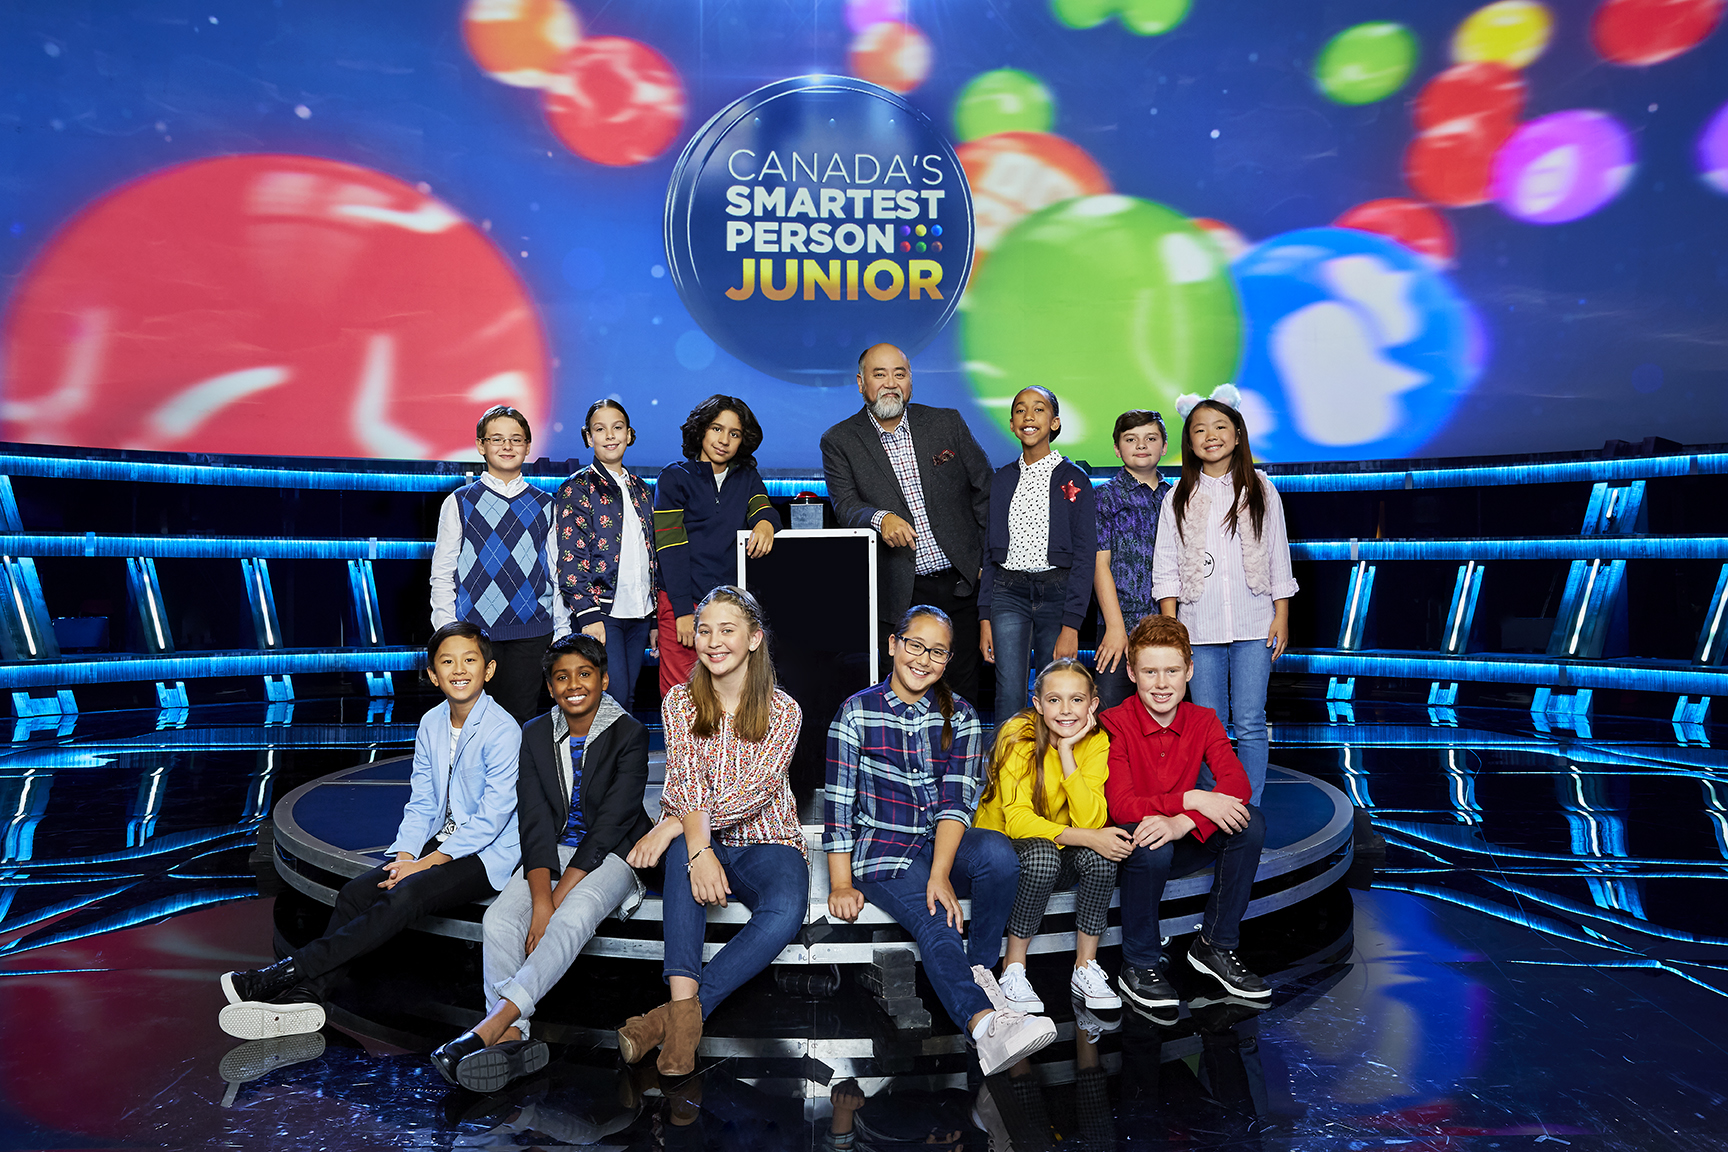 CBC ANNOUNCES THE 12 CANADIAN KIDS VYING FOR THE TITLE OF CANADA'S SMARTEST PERSON JUNIOR HOSTED BY